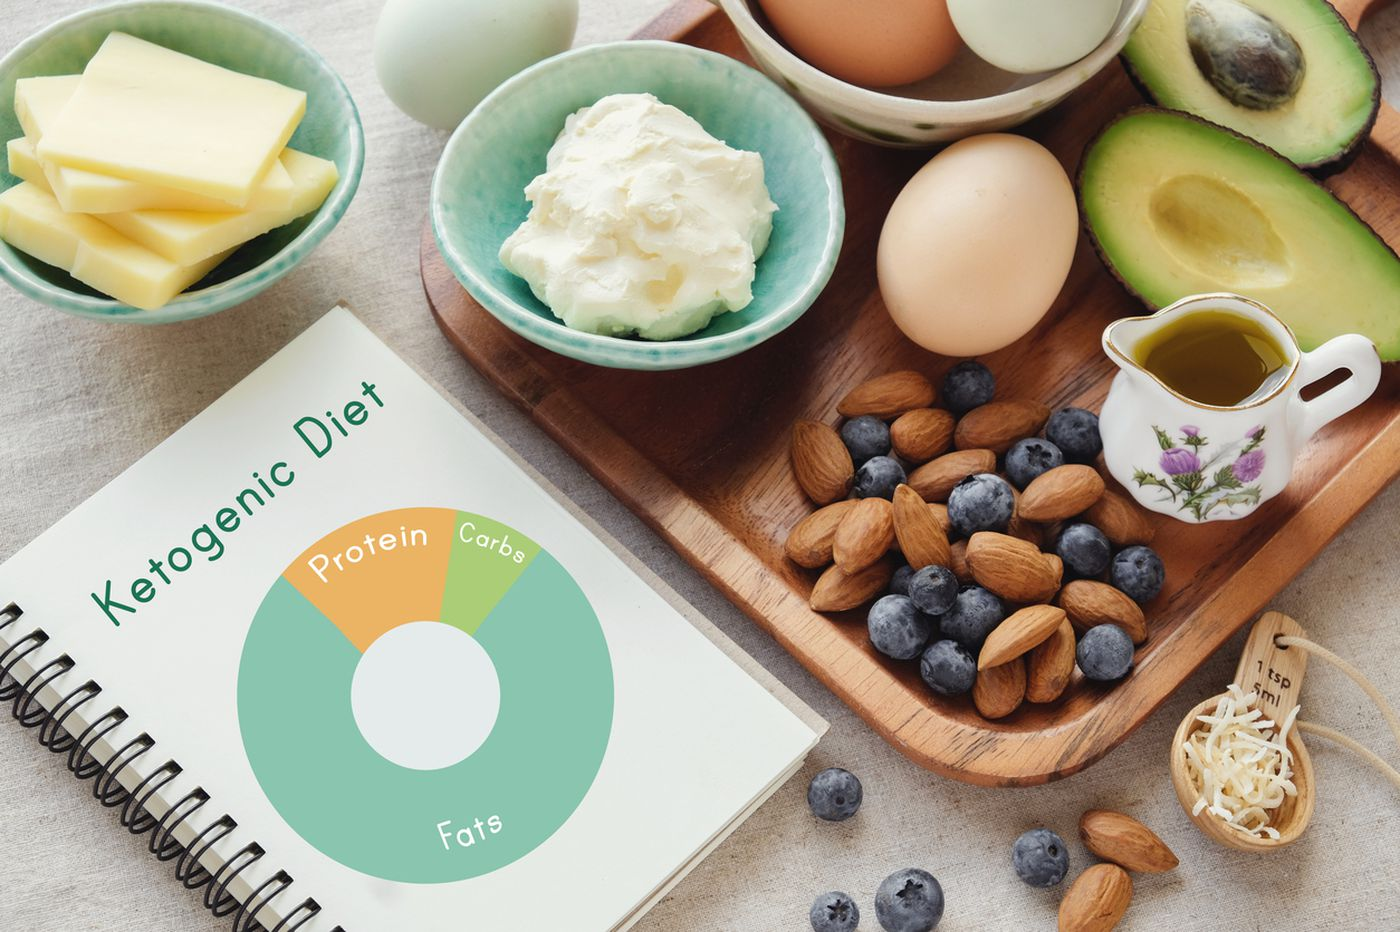 The ketogenic diet is about more than weight loss. How one mother uses it to control her son's seizures.